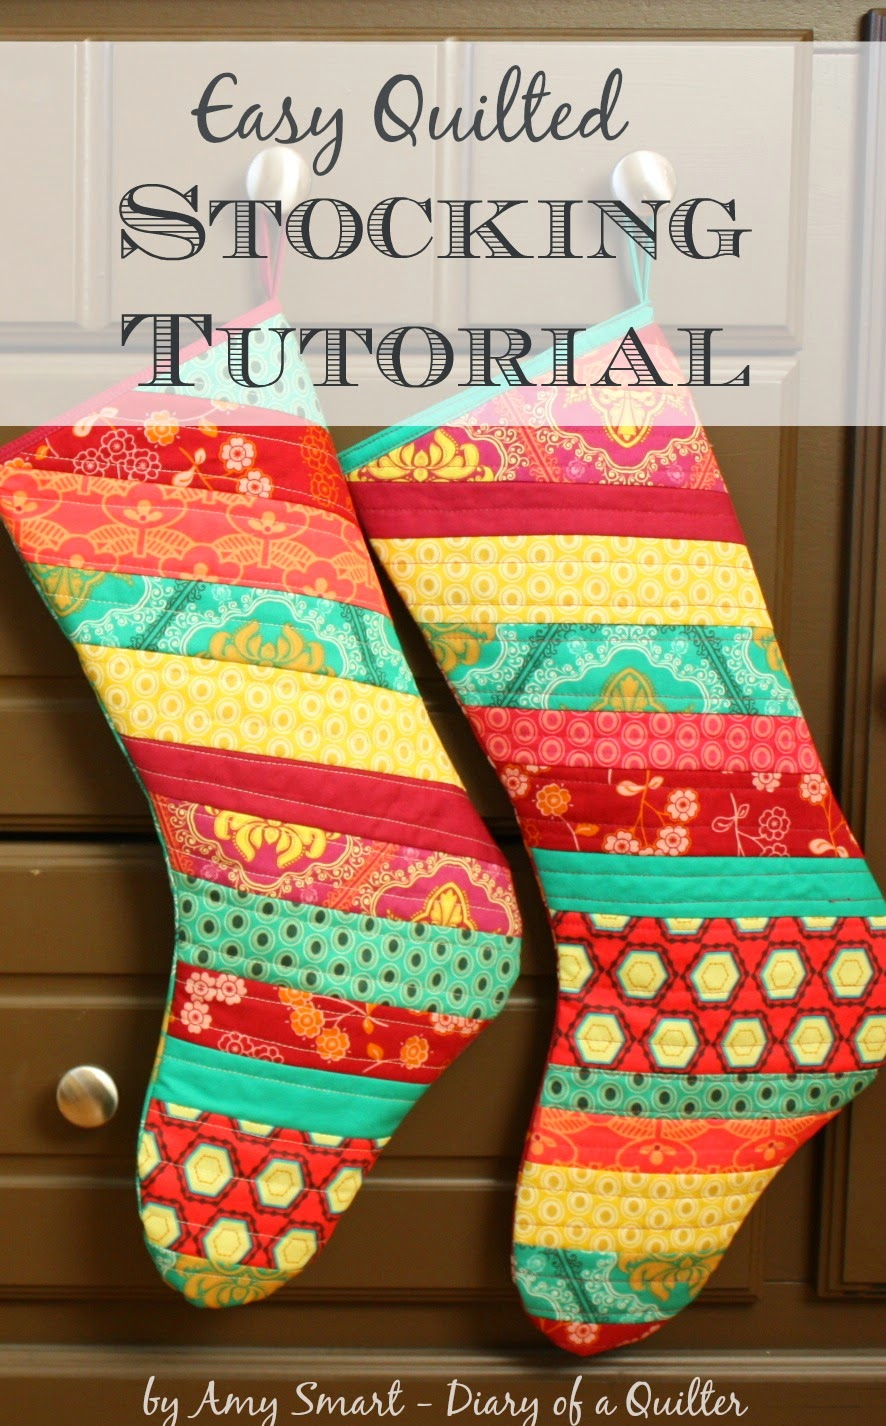 Christmas stocking tutorial diary of a quilter a quilt blog today im going to show you a simple method for making scrappy christmas stockings theyre quick and super easy i promise and a great way to use up your jeuxipadfo Gallery